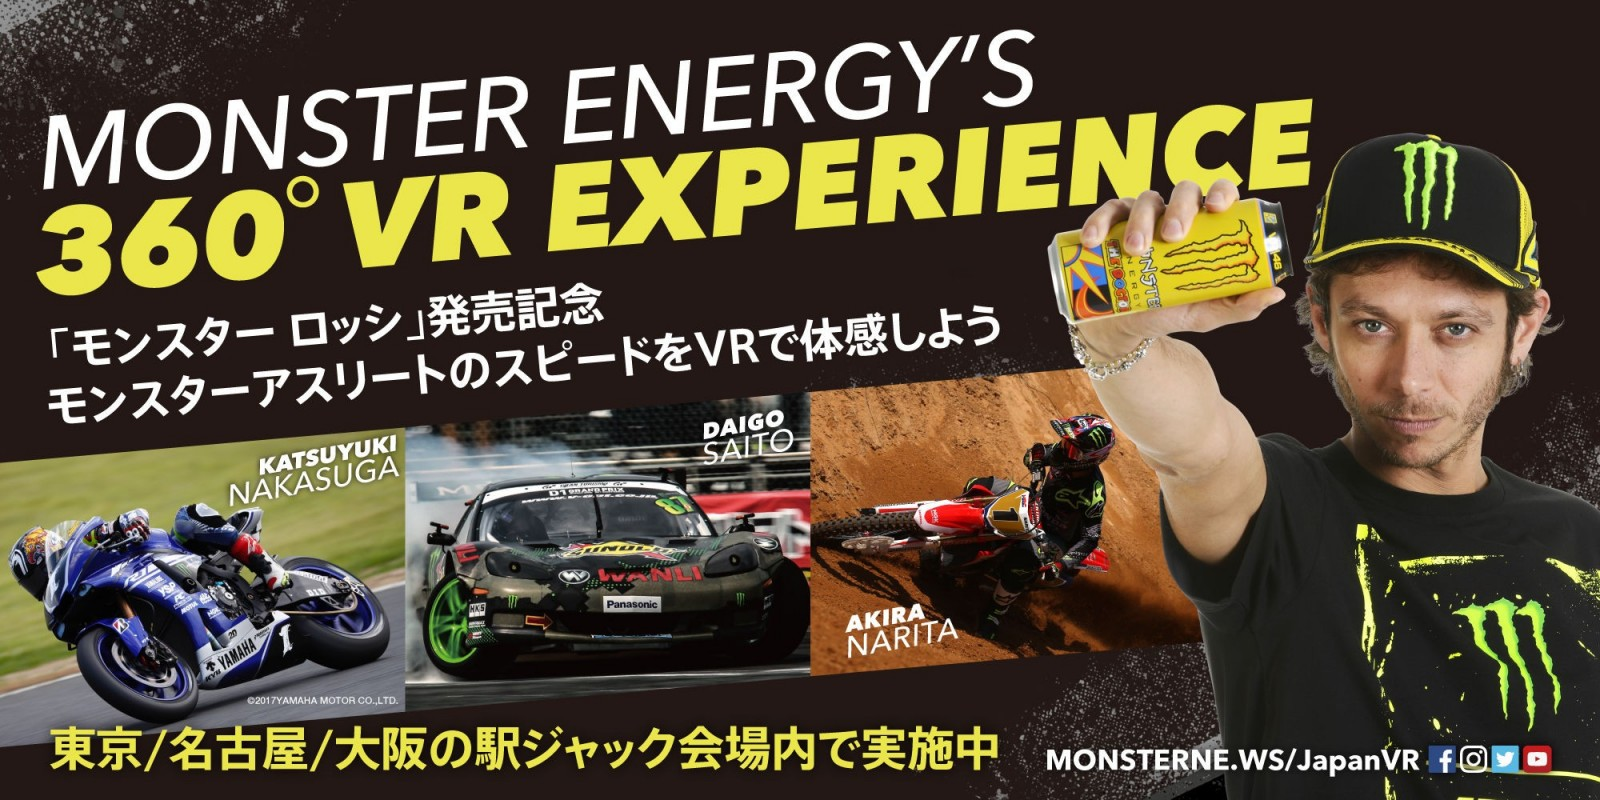 Web graphics for Japan Monster Rossi Product Launch promotion